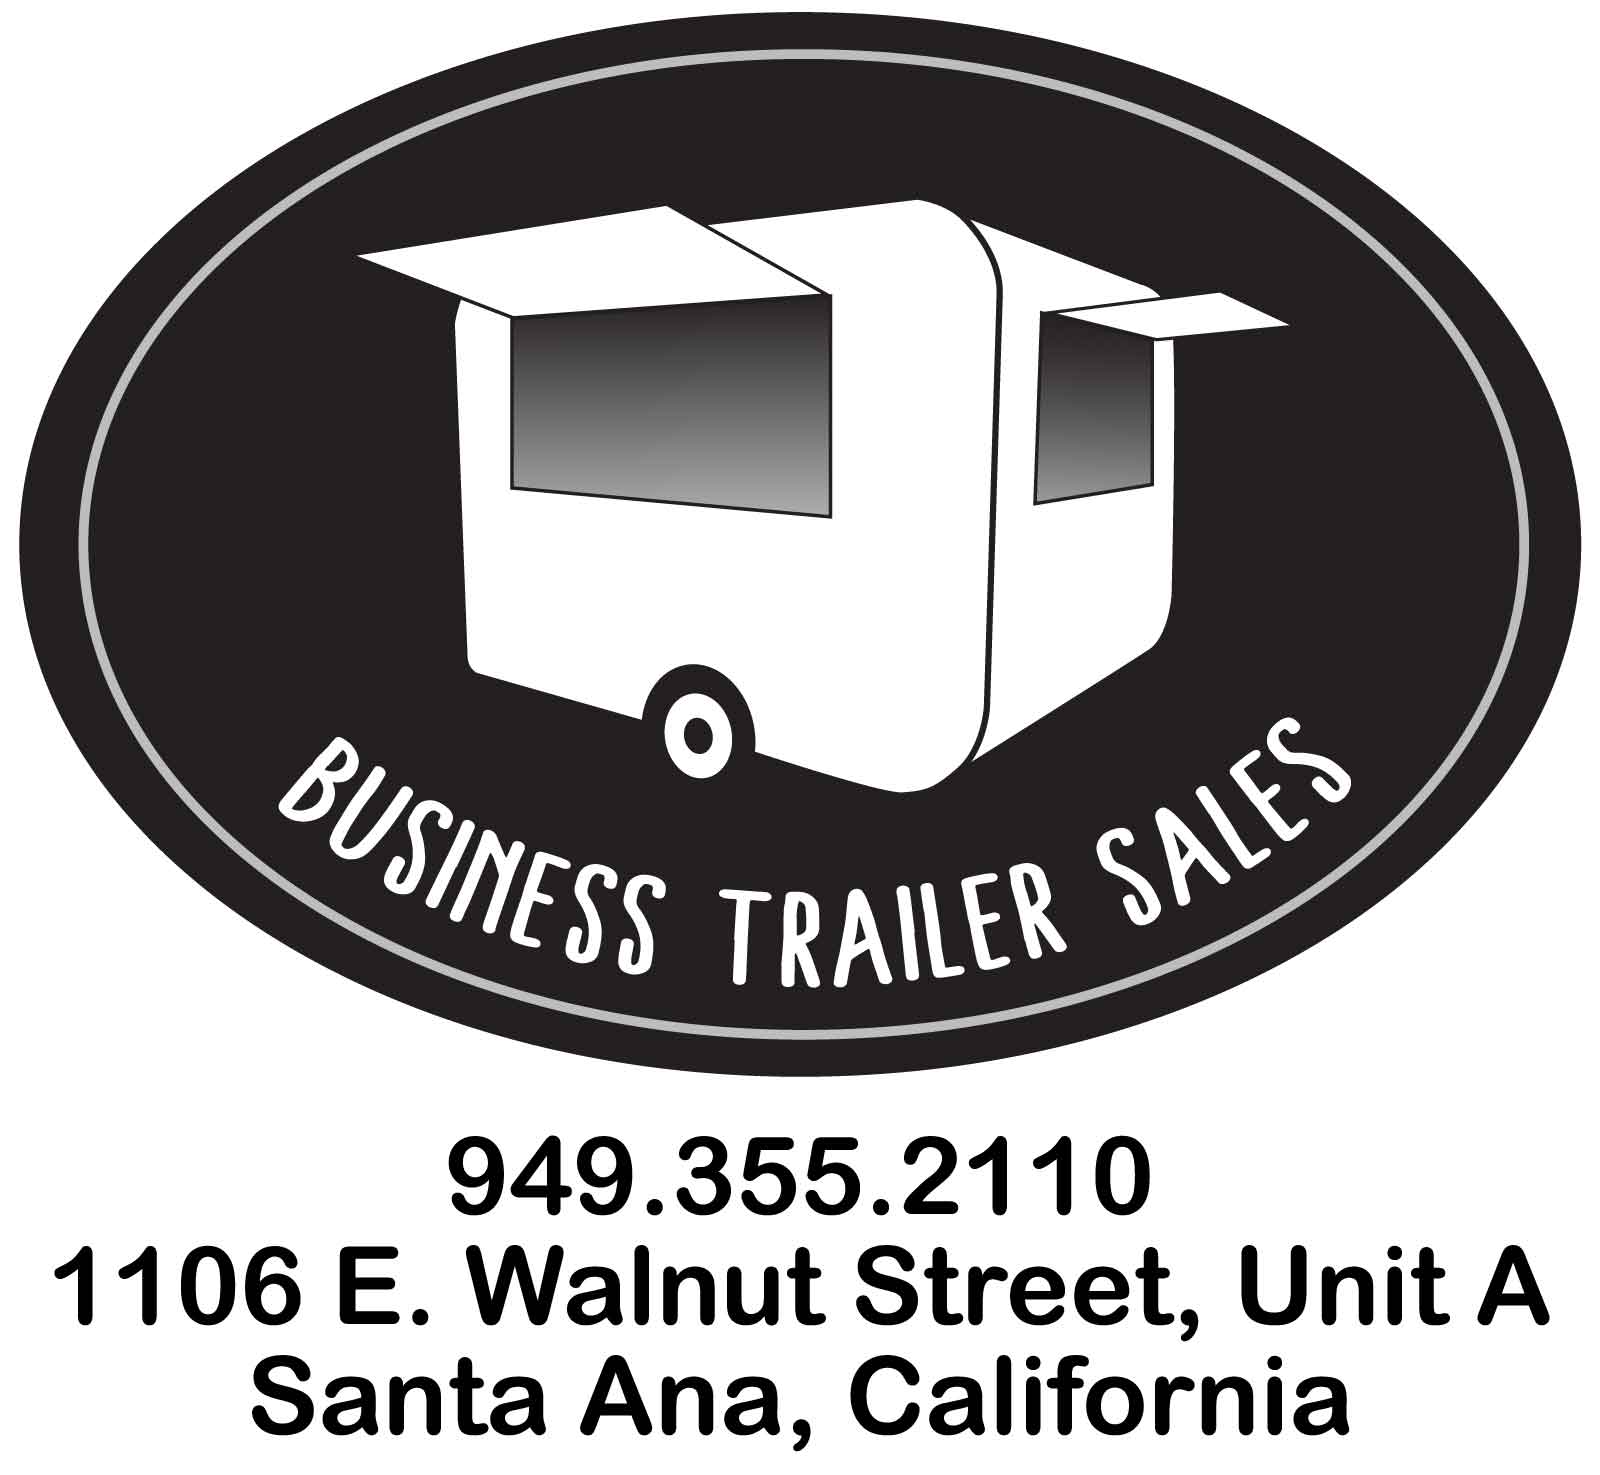 Business Trailer Sales Logo and contact information